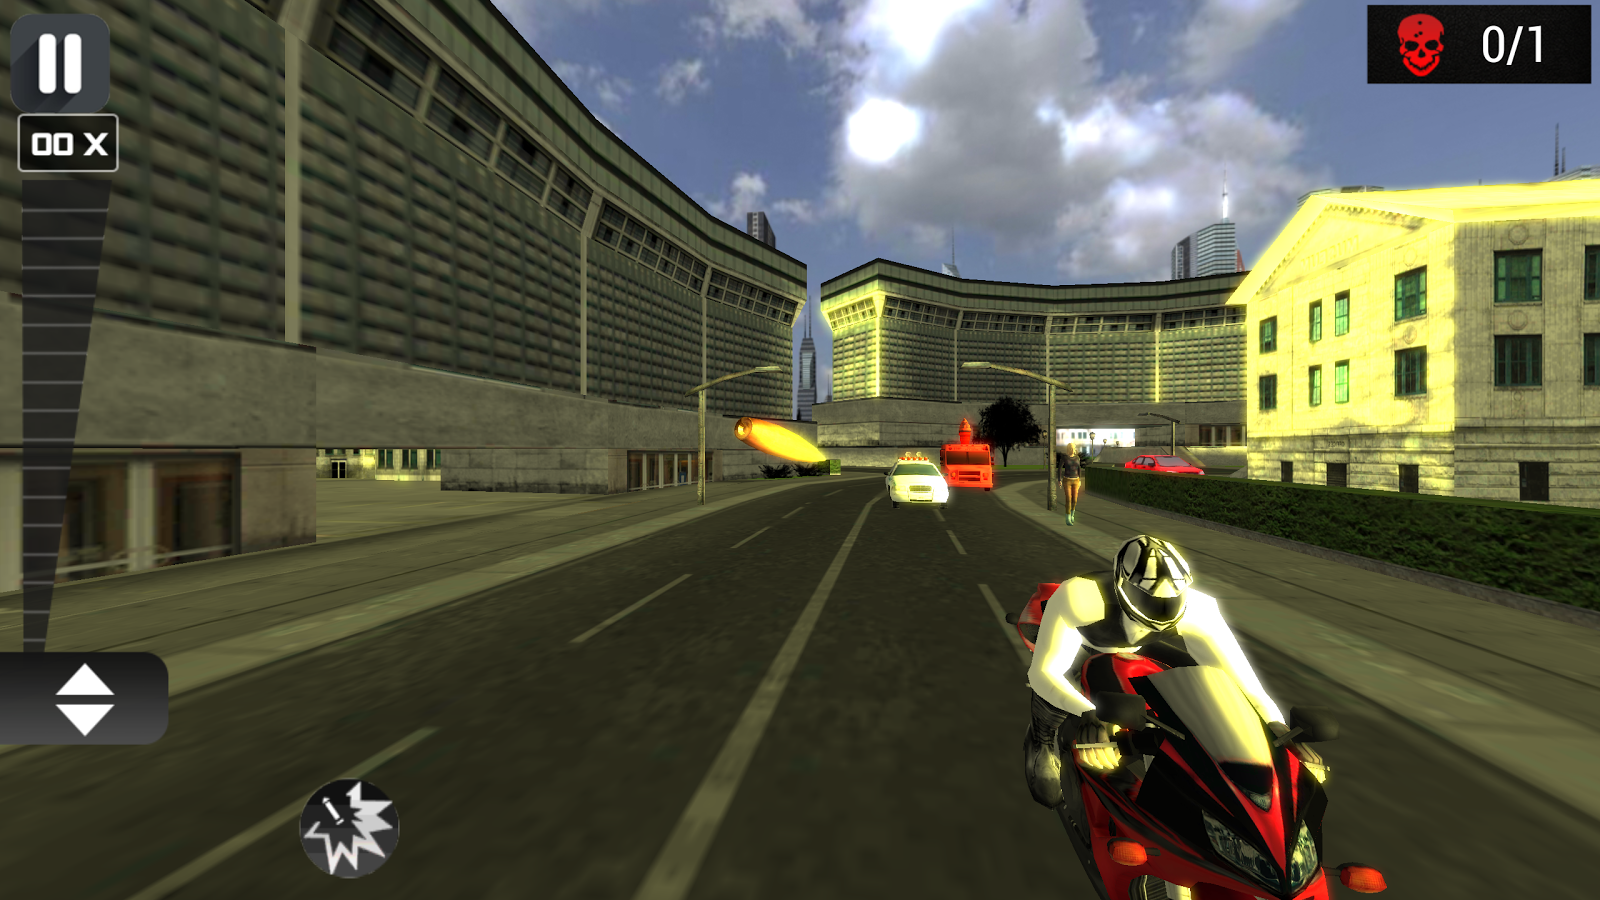 Sniper Terrorist Strike Screenshot 2